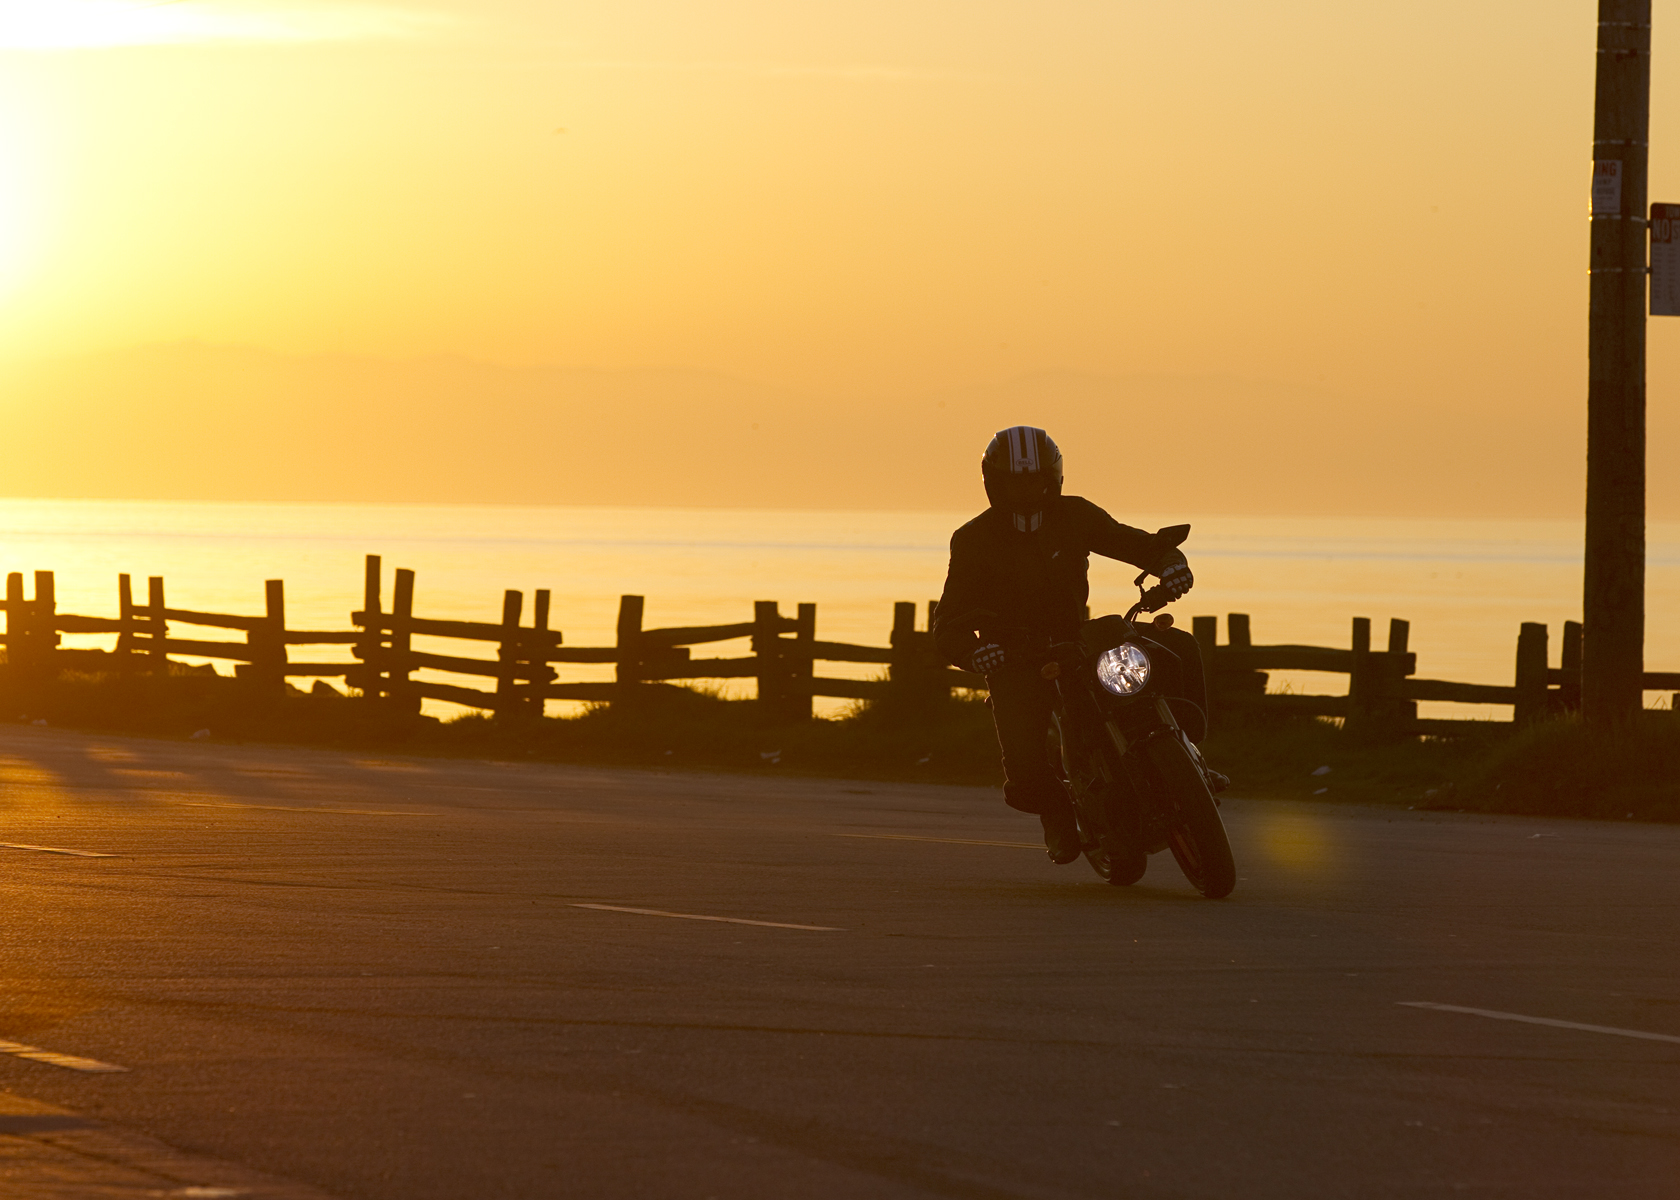 '.2011 Zero S Electric Motorcycle: Cruising at Sunset, Pacific Ocean View.'